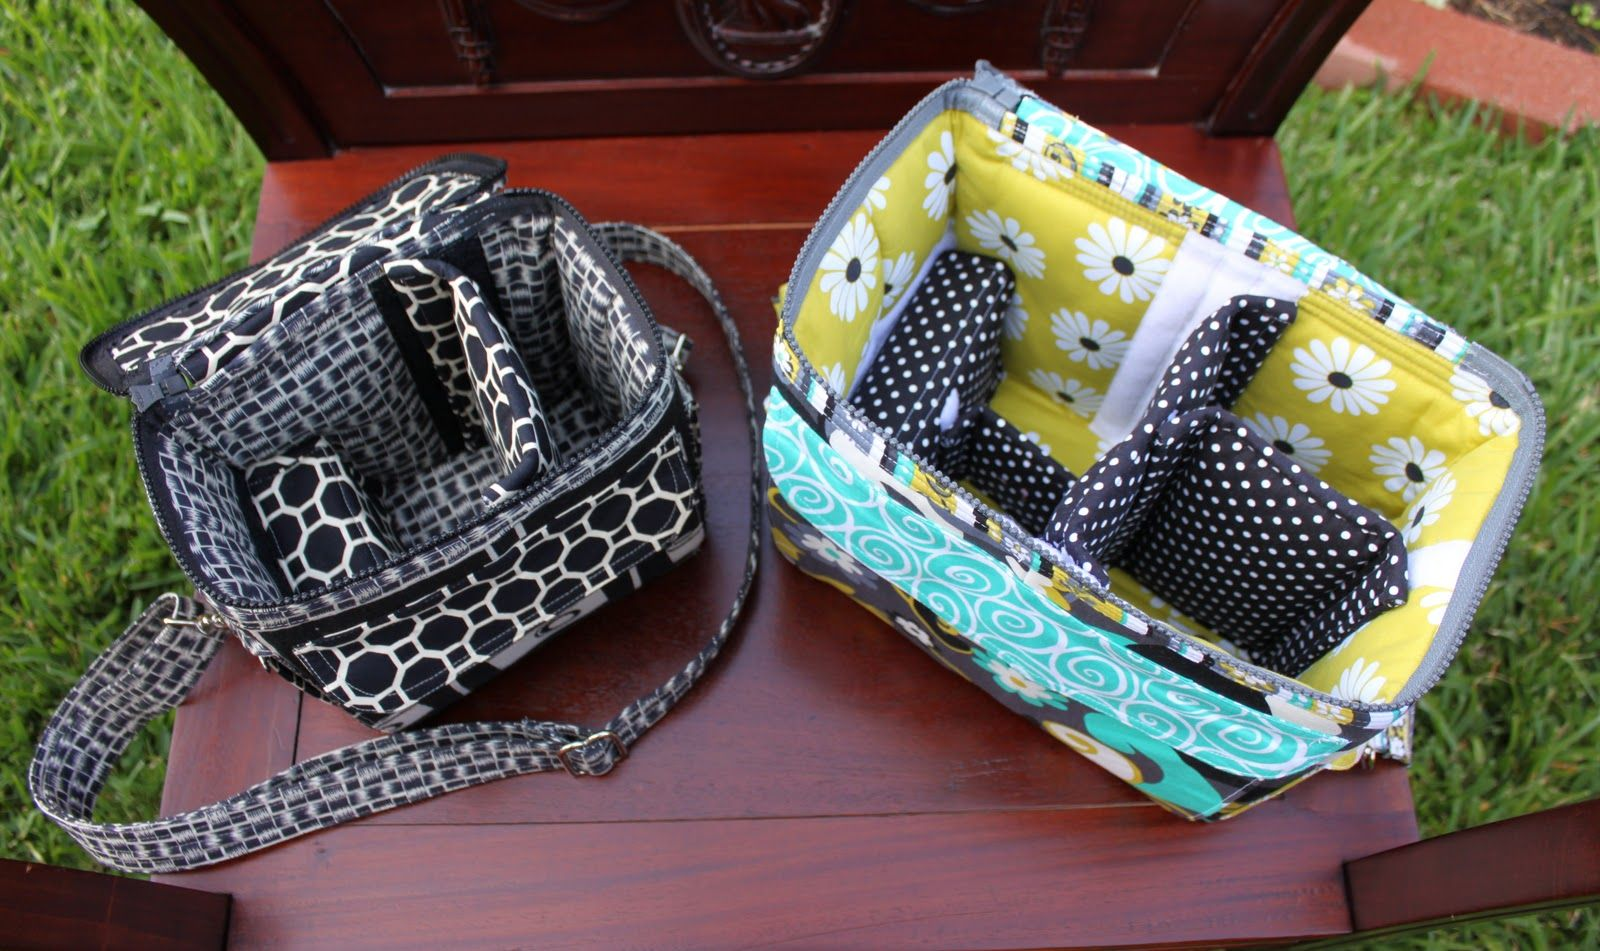 Camera Dslr Camera Bag Pattern 1000 images about camera bags and straps on pinterest